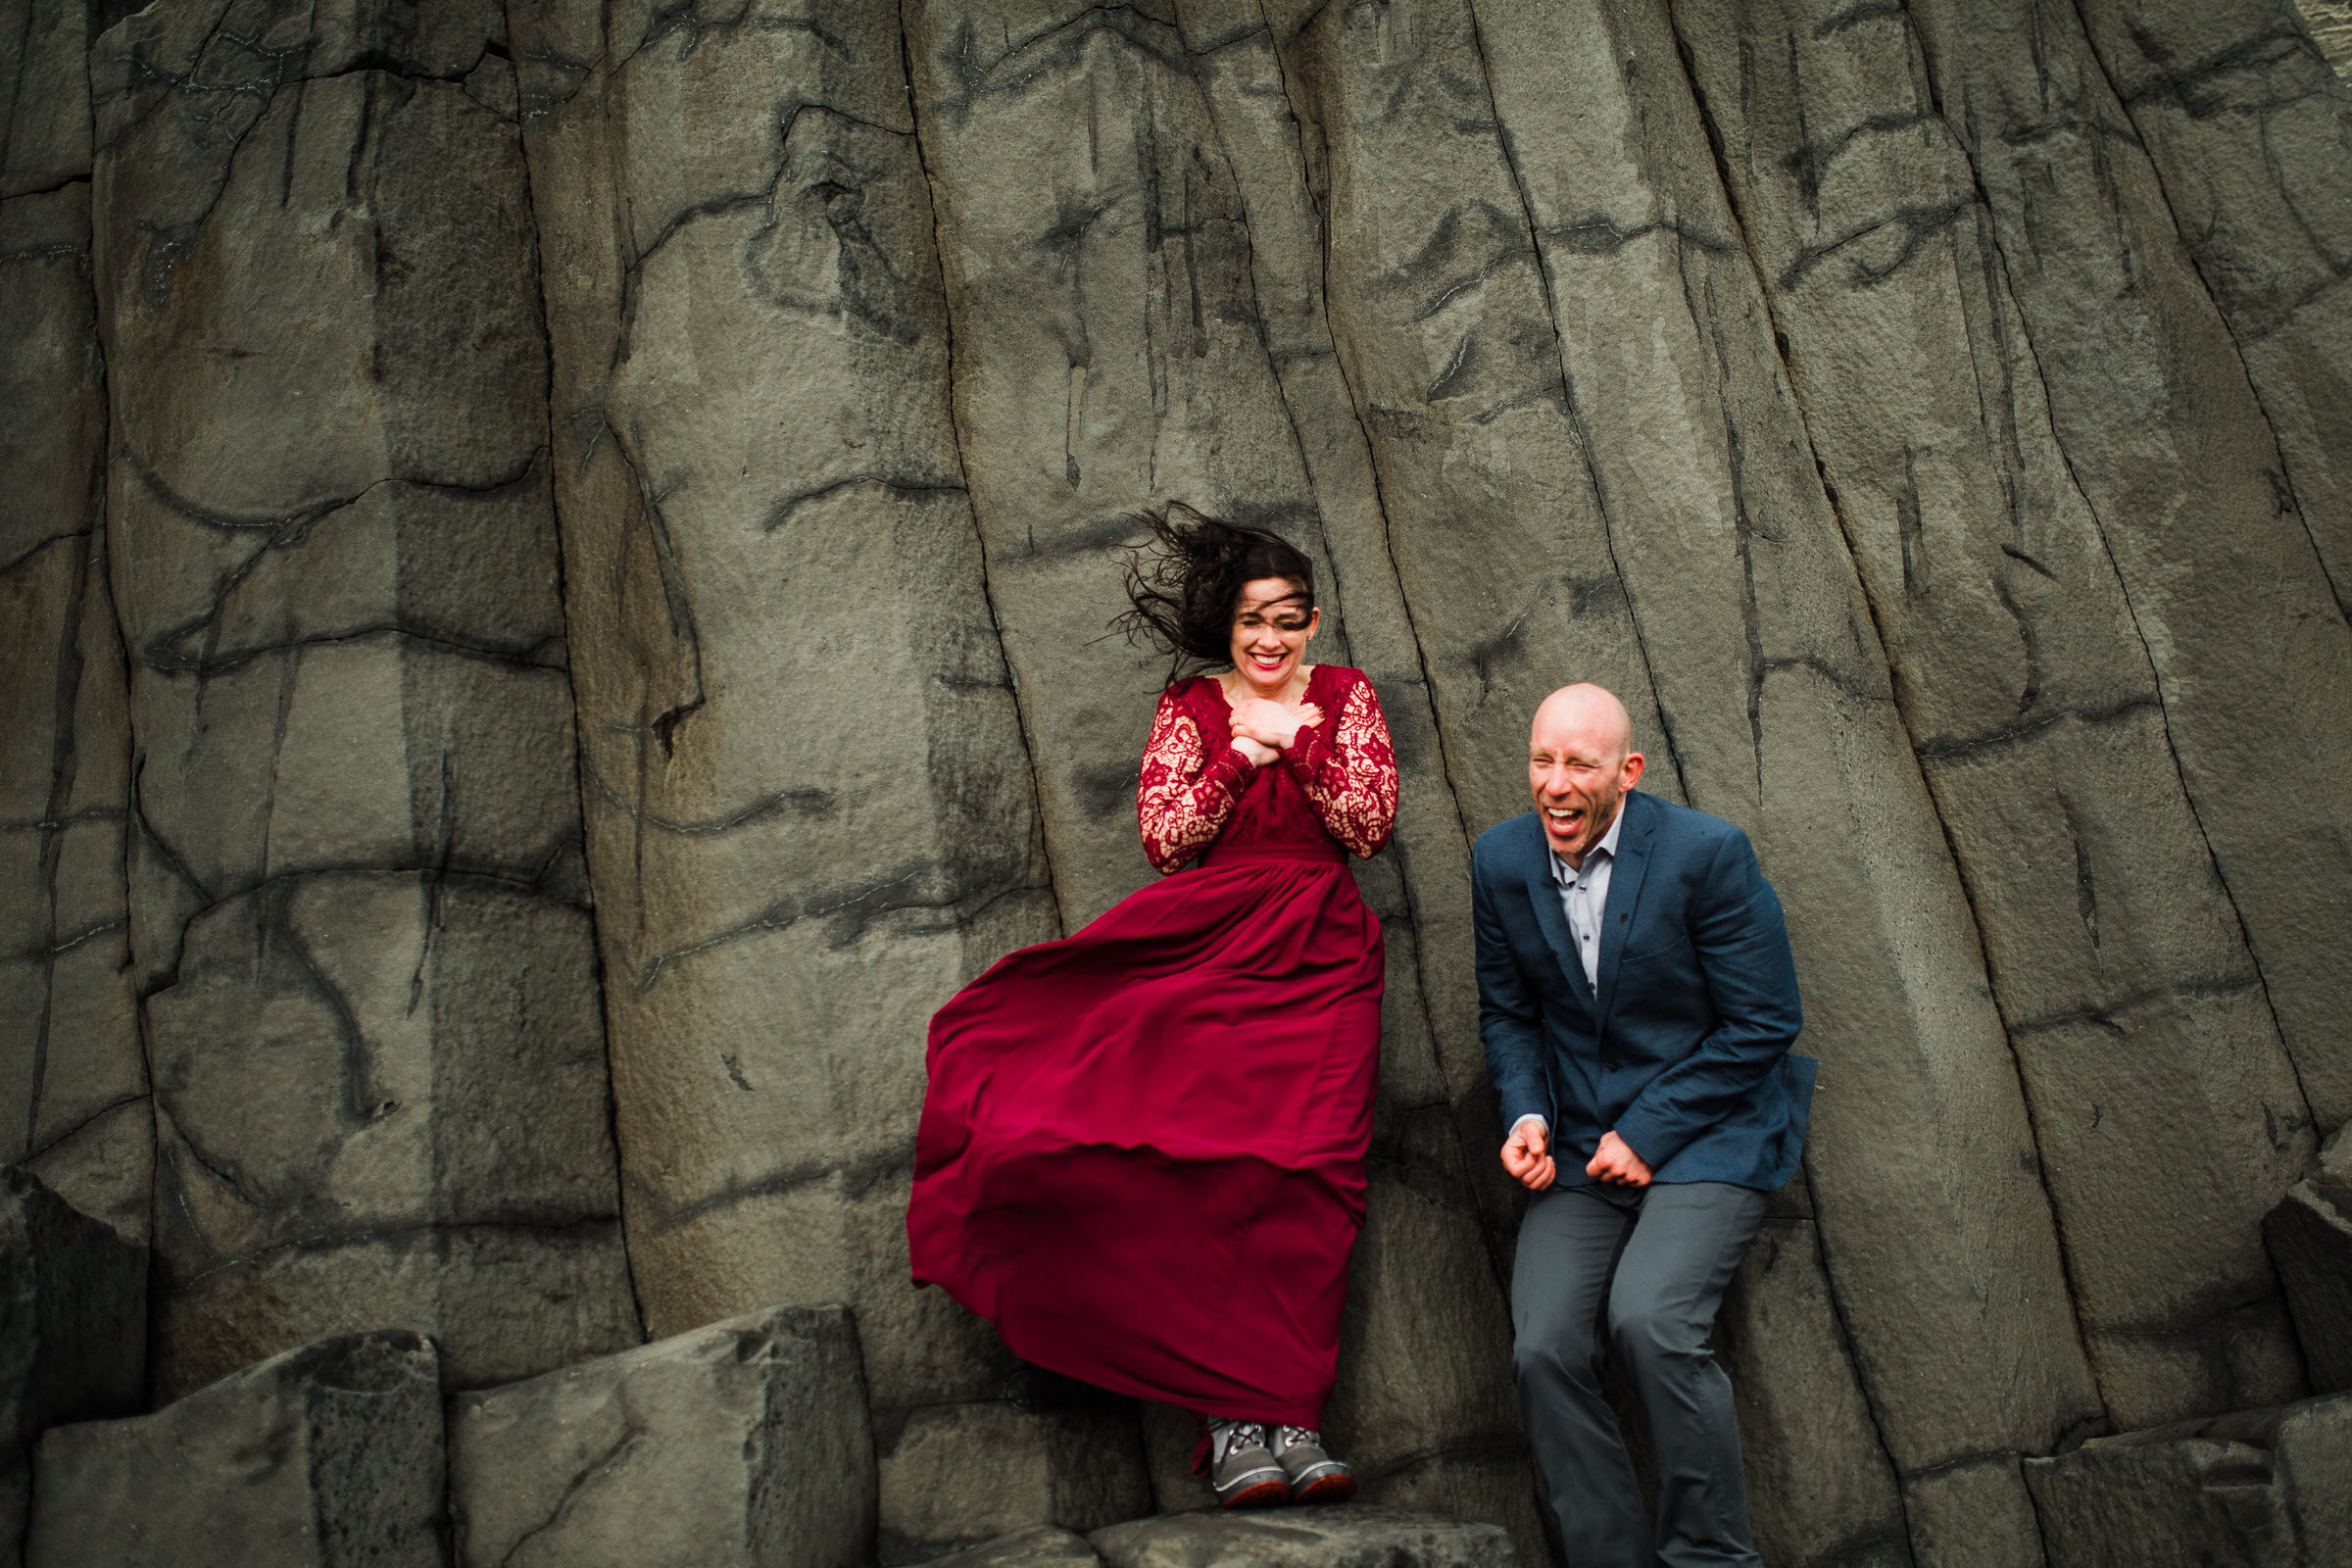 Elopement couple against cold rock wall in Iceland - photo by M&J Studios